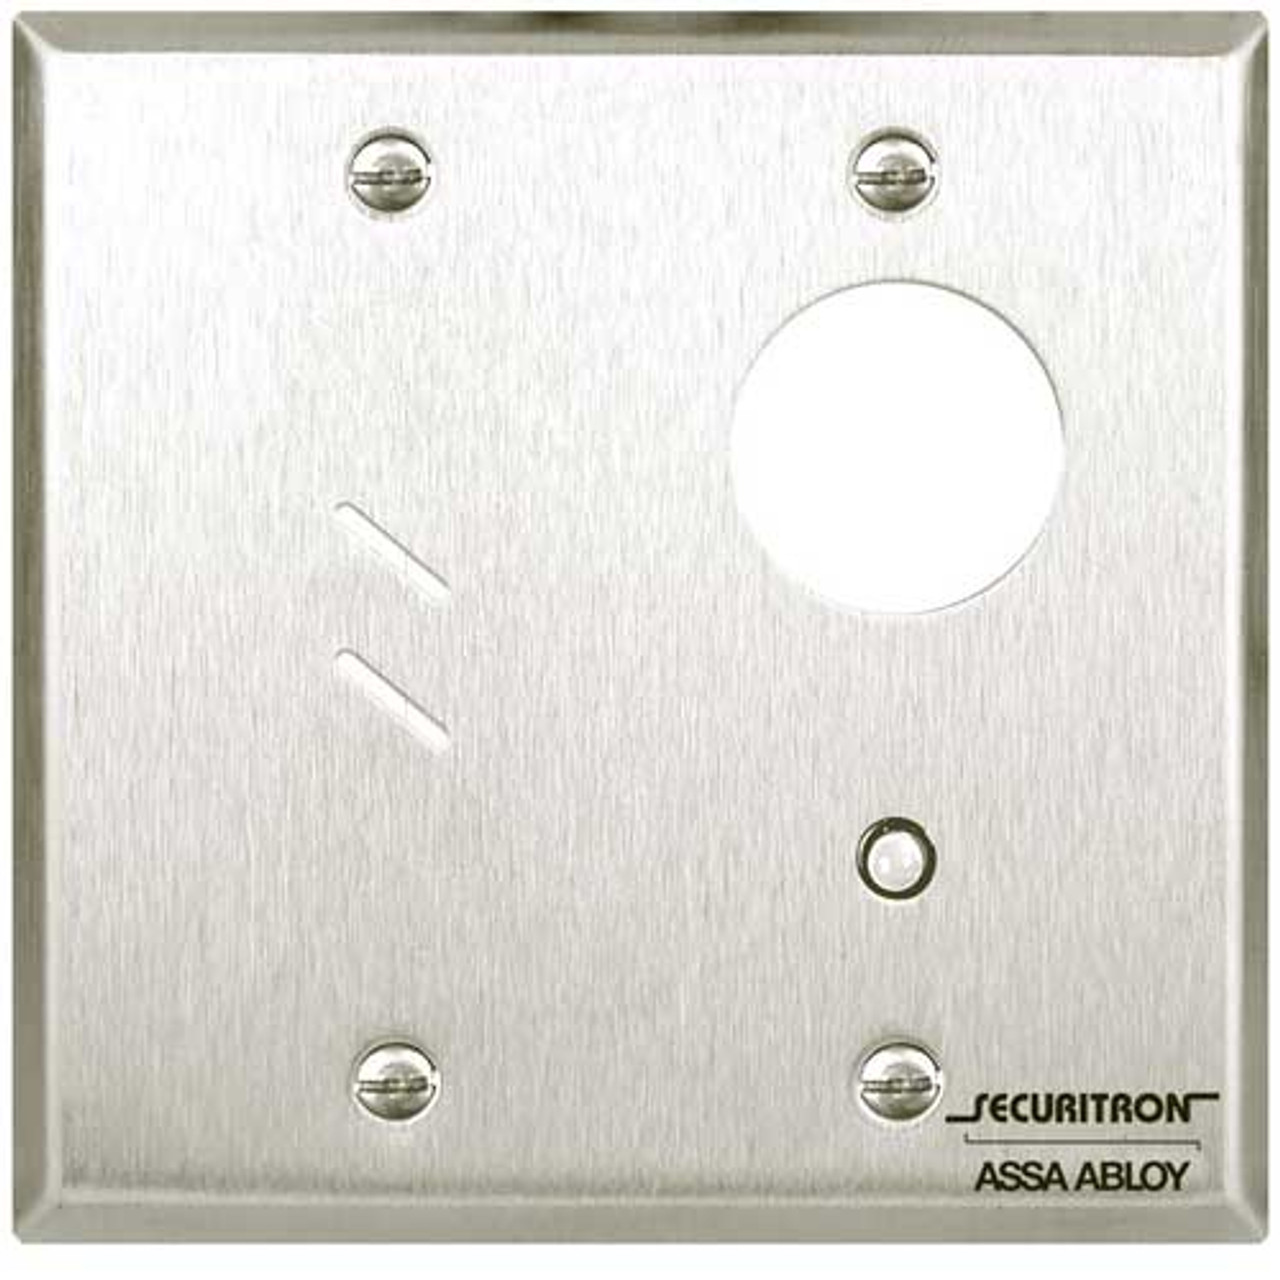 MKAPZ Securitron Double Gang Alternate Mortise Keyswitch with Audible